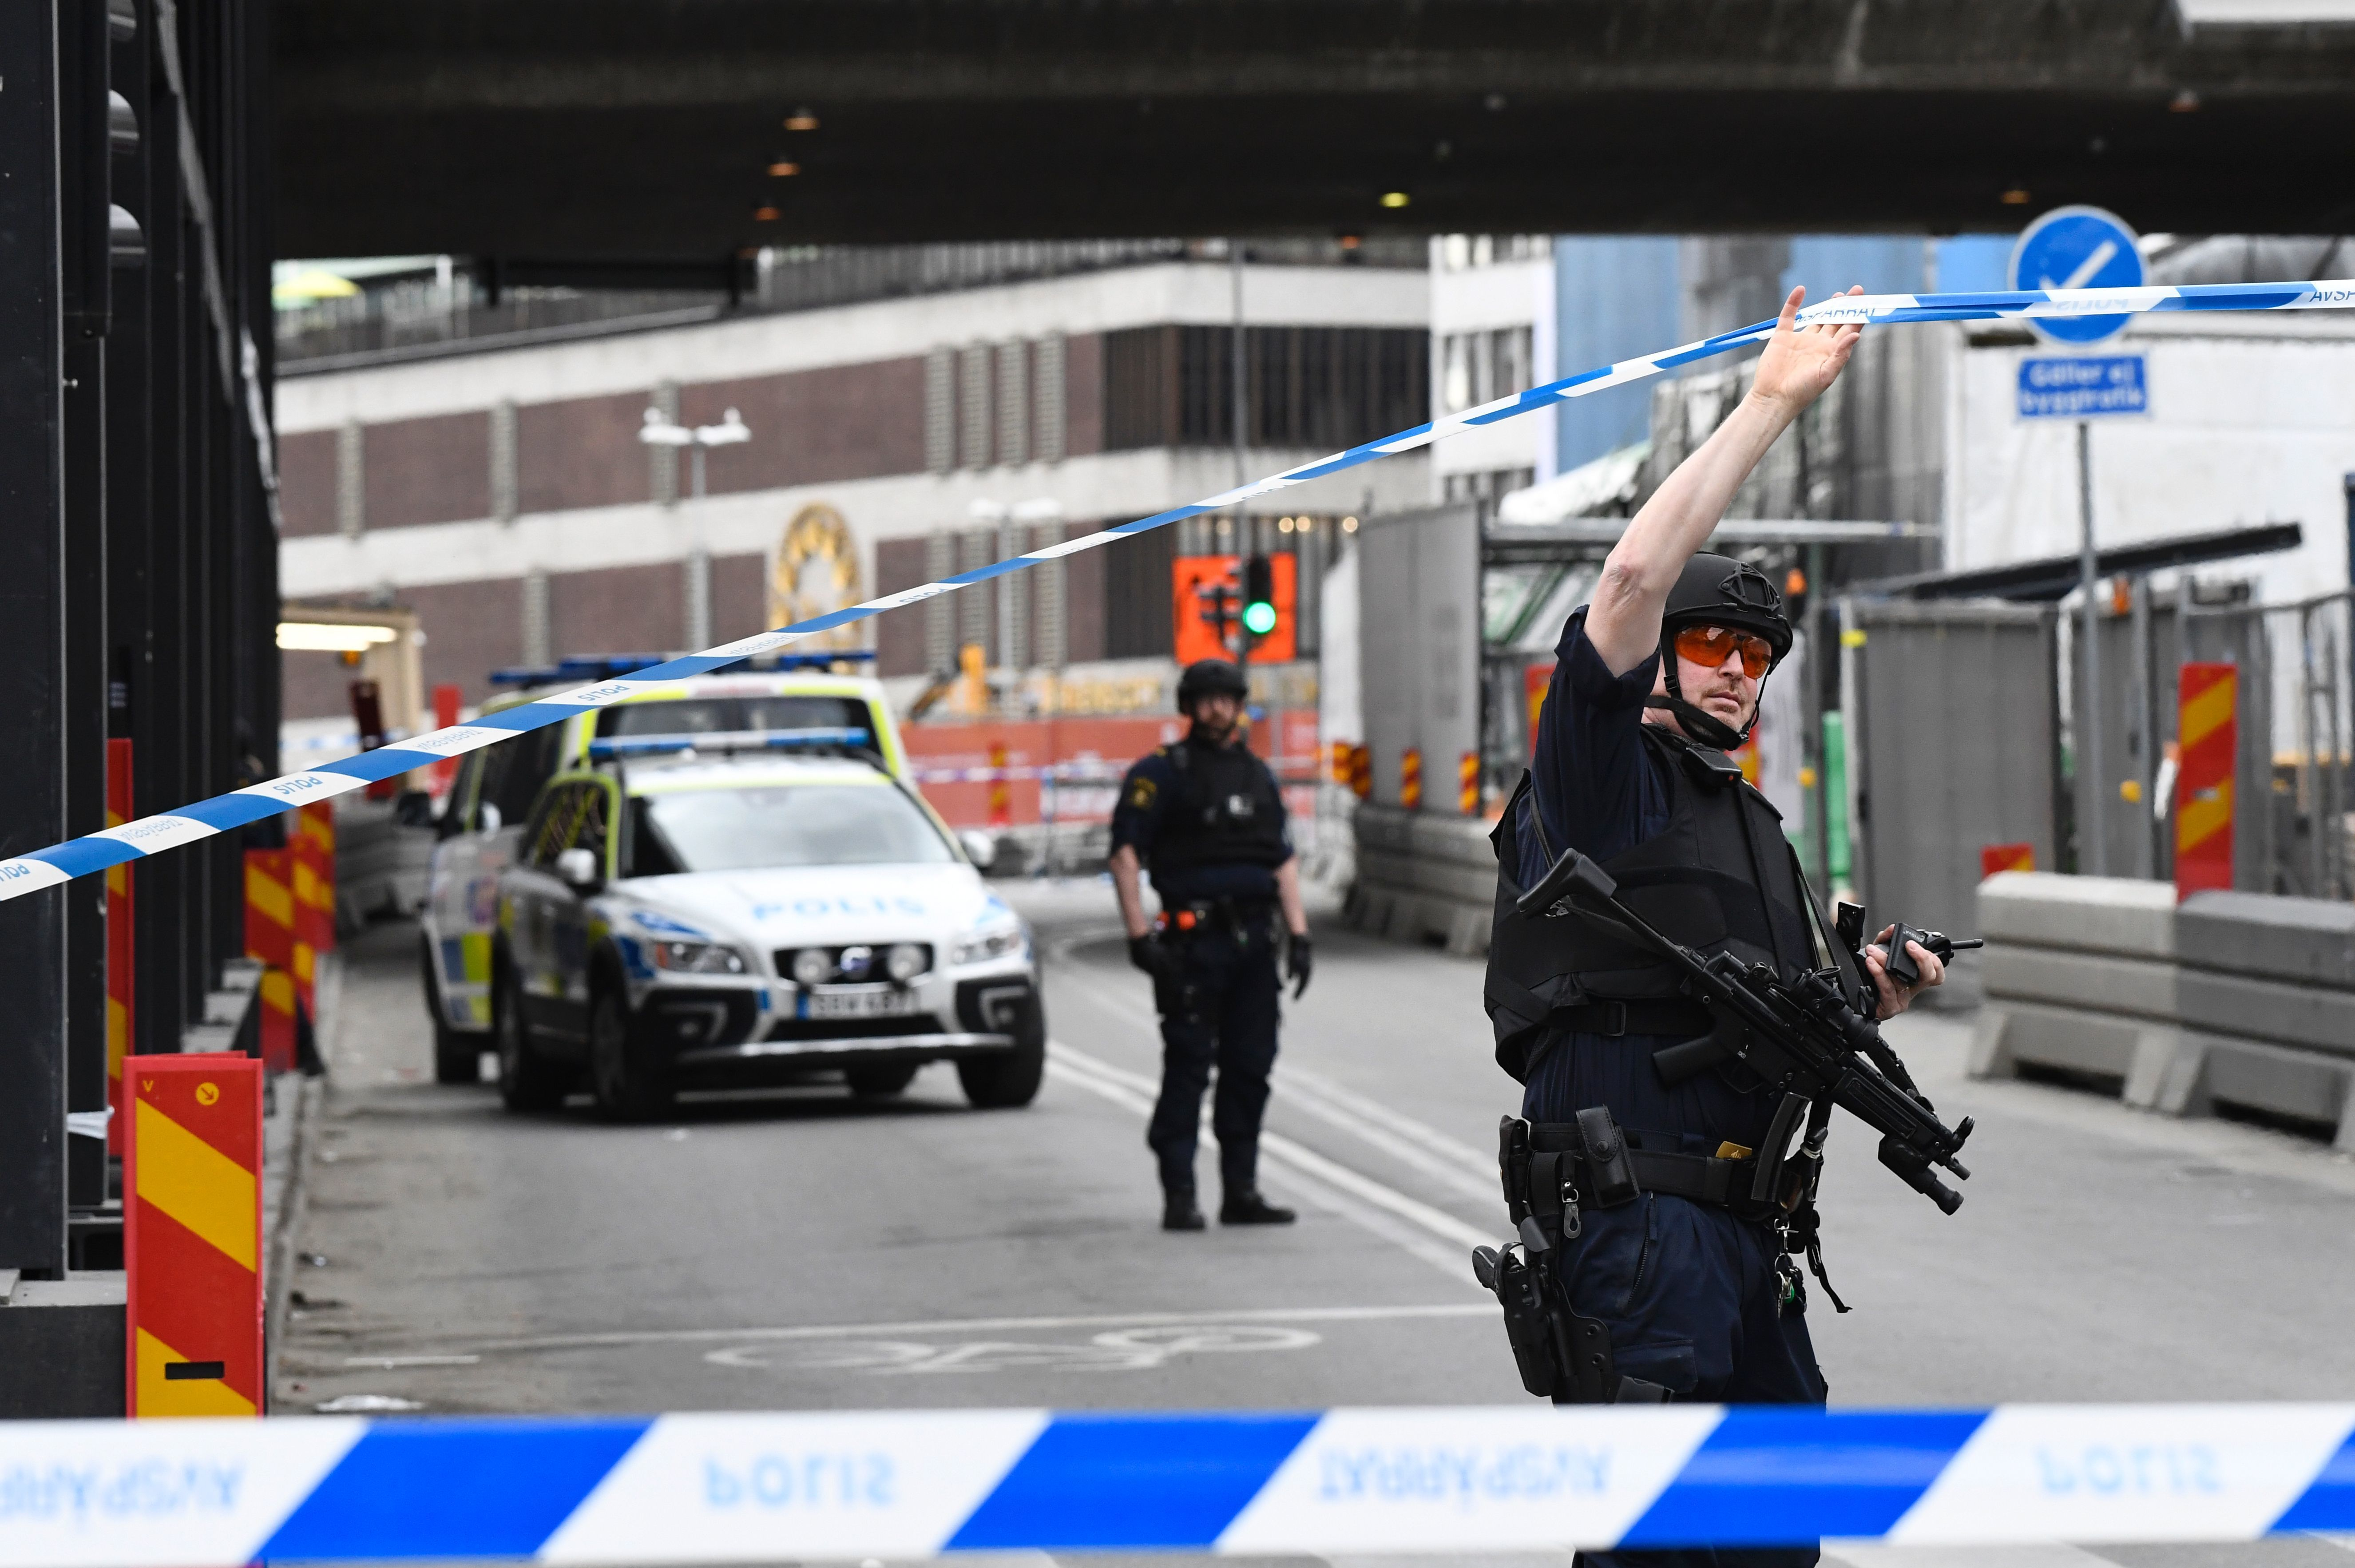 Vehicle crashes into crowd on Stockholm street, 3 dead